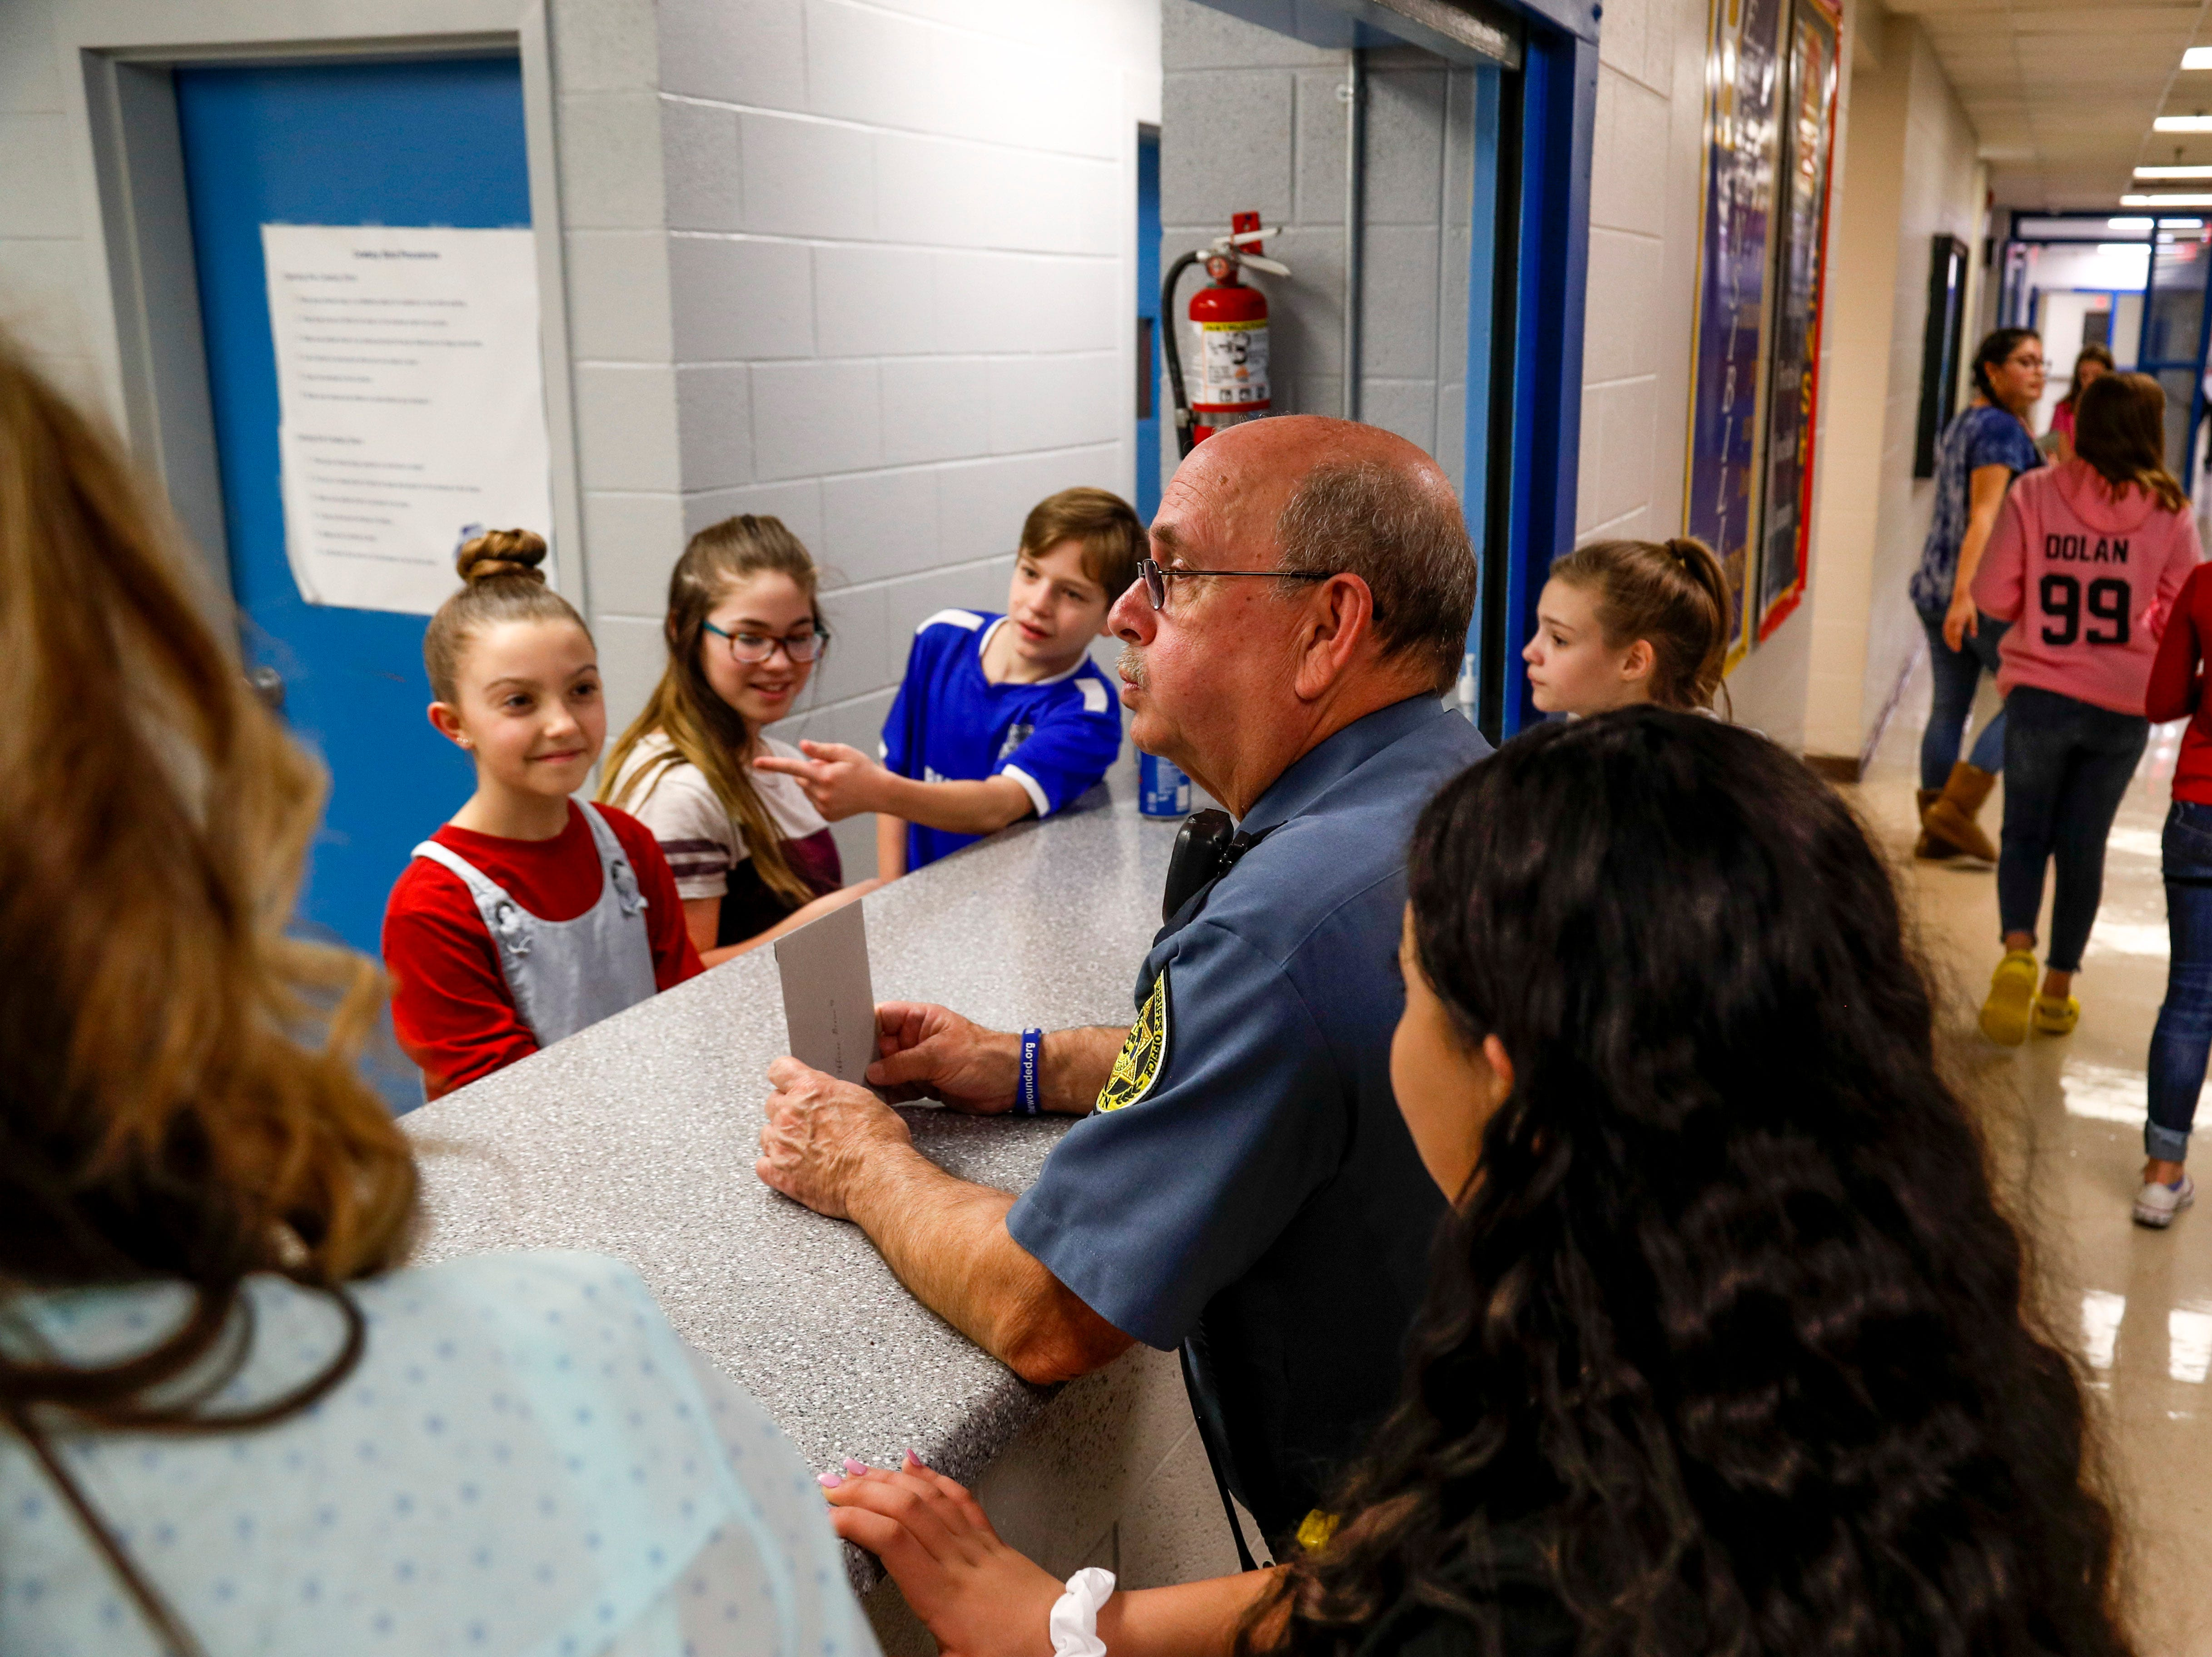 SRO Richard Brown leans over the counter and speaks with student helpers and others about the over 1200 brownies sold to help fund the 8th grade dance at Richview Middle School in Clarksville, Tenn., on Friday, March 15, 2019.